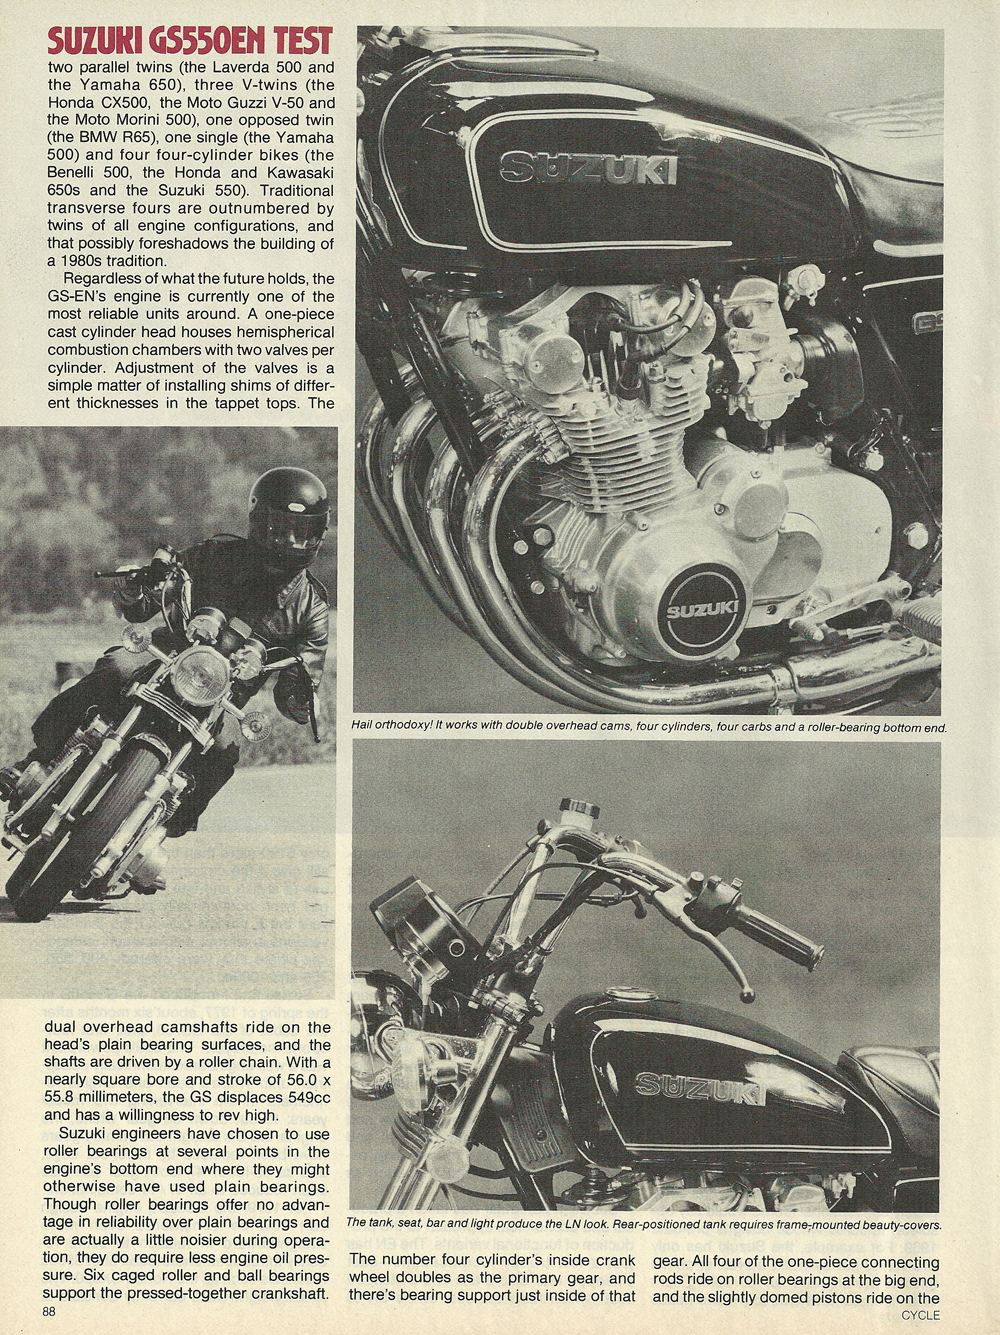 1979 Suzuki GS550EN road test 3.jpg